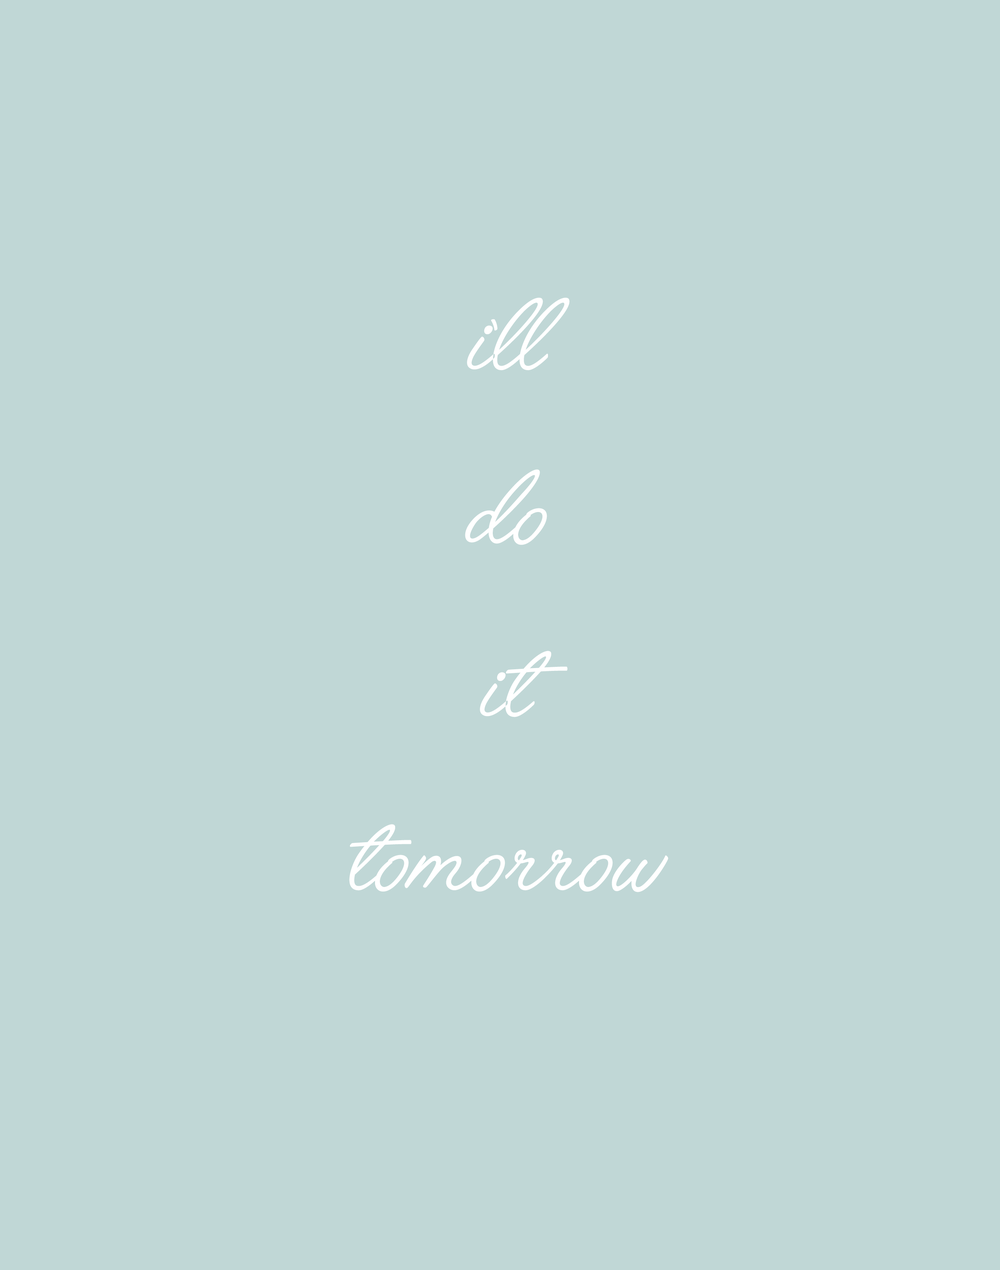 I'LL DO IT TOMORROW - In general, I'm pretty good at sticking to my to-do list and getting things ticked off. But there are certain tasks I always find myself writing down day after day. And they're never the really difficult tasks either, infact they always take the least amount of time so I have no logical reason to keep on telling myself oh I'll do it tomorrow. Because I know full well that it's just an excuse and I will more than likely do the exact same thing the next day. So now when I'm tempted to say that I'll do it tomorrow I'm going to try and do the task there and then if I can. That way it won't haunt me for weeks and it's done and ticked off my to-do list.